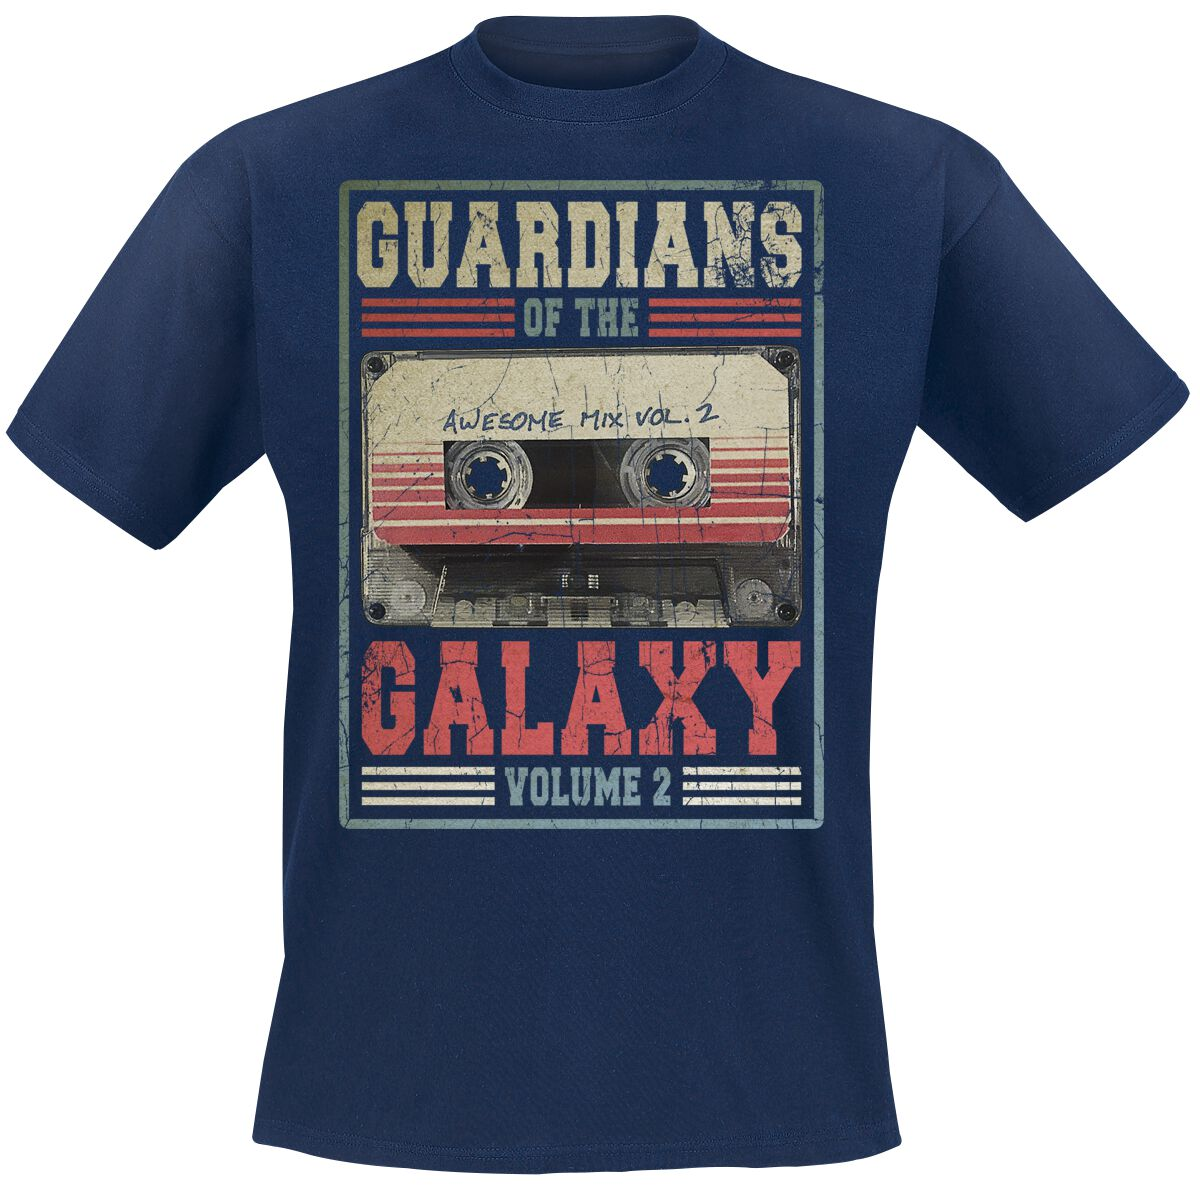 Image of   Guardians Of The Galaxy 2 - Mixtape Vol. 2 T-Shirt navy